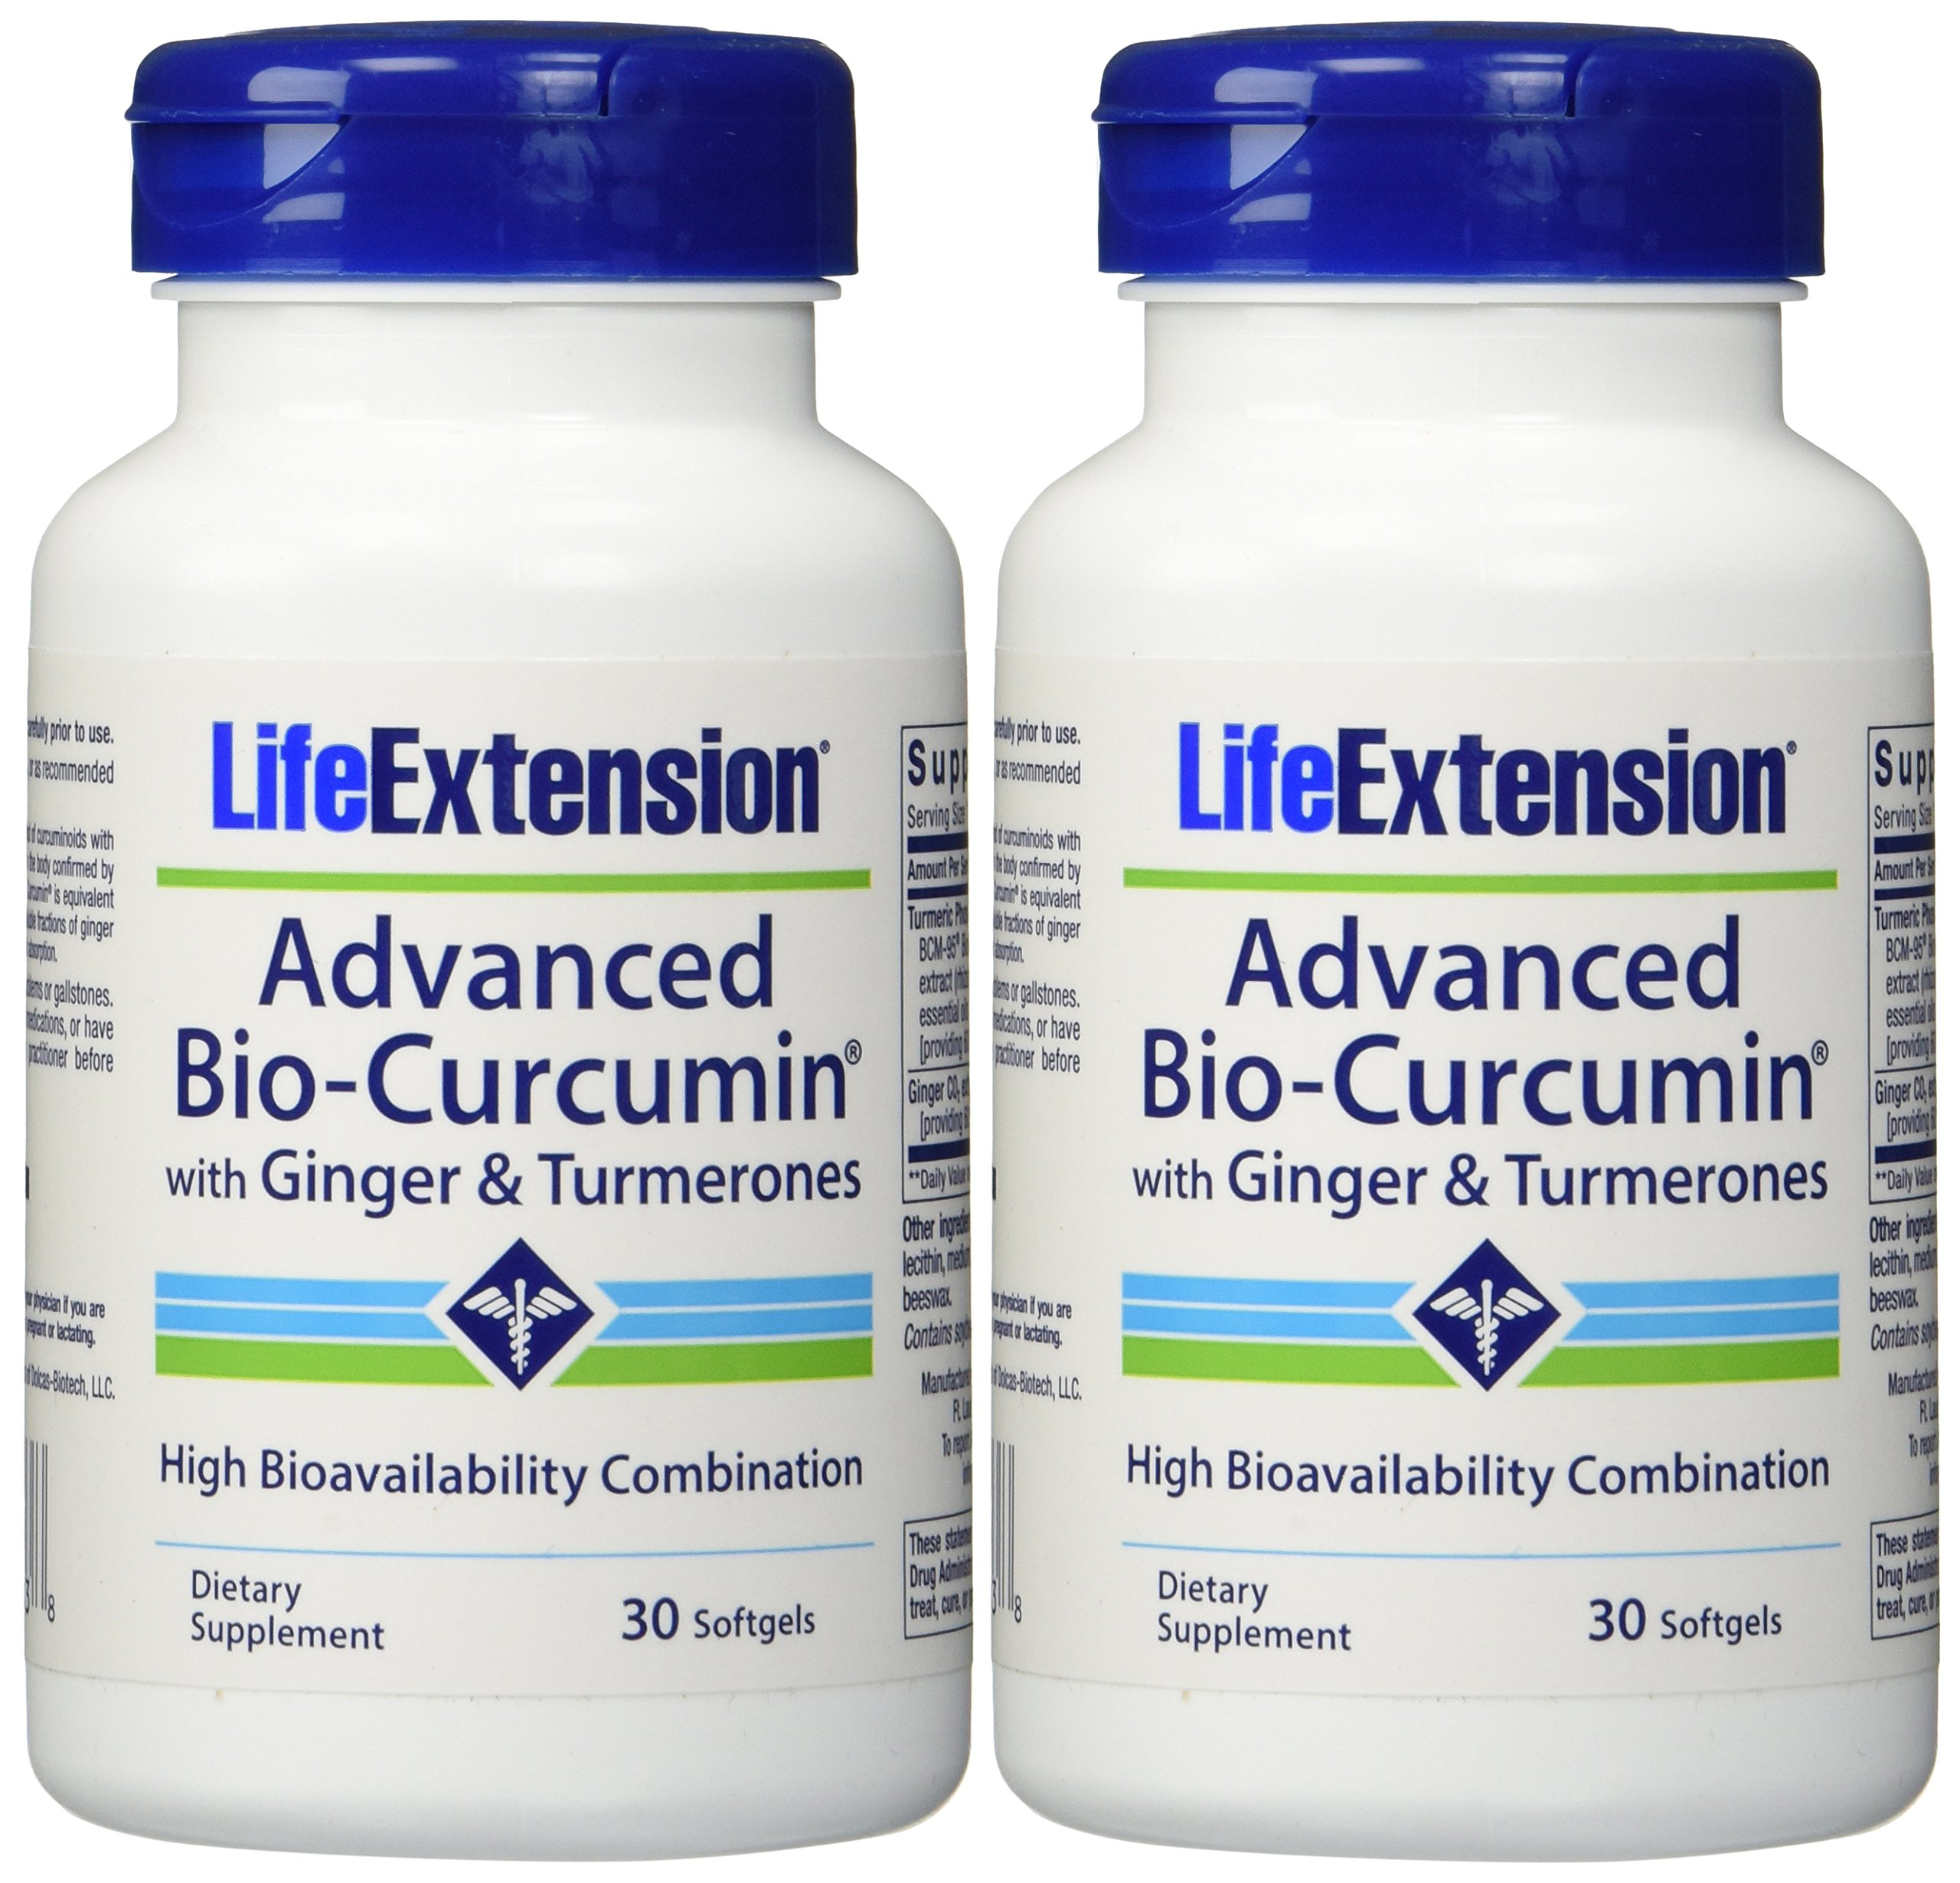 Life Extension Advanced Bio-curcumin with Ginger and Turmerones 30 Softgels (2-Pack)